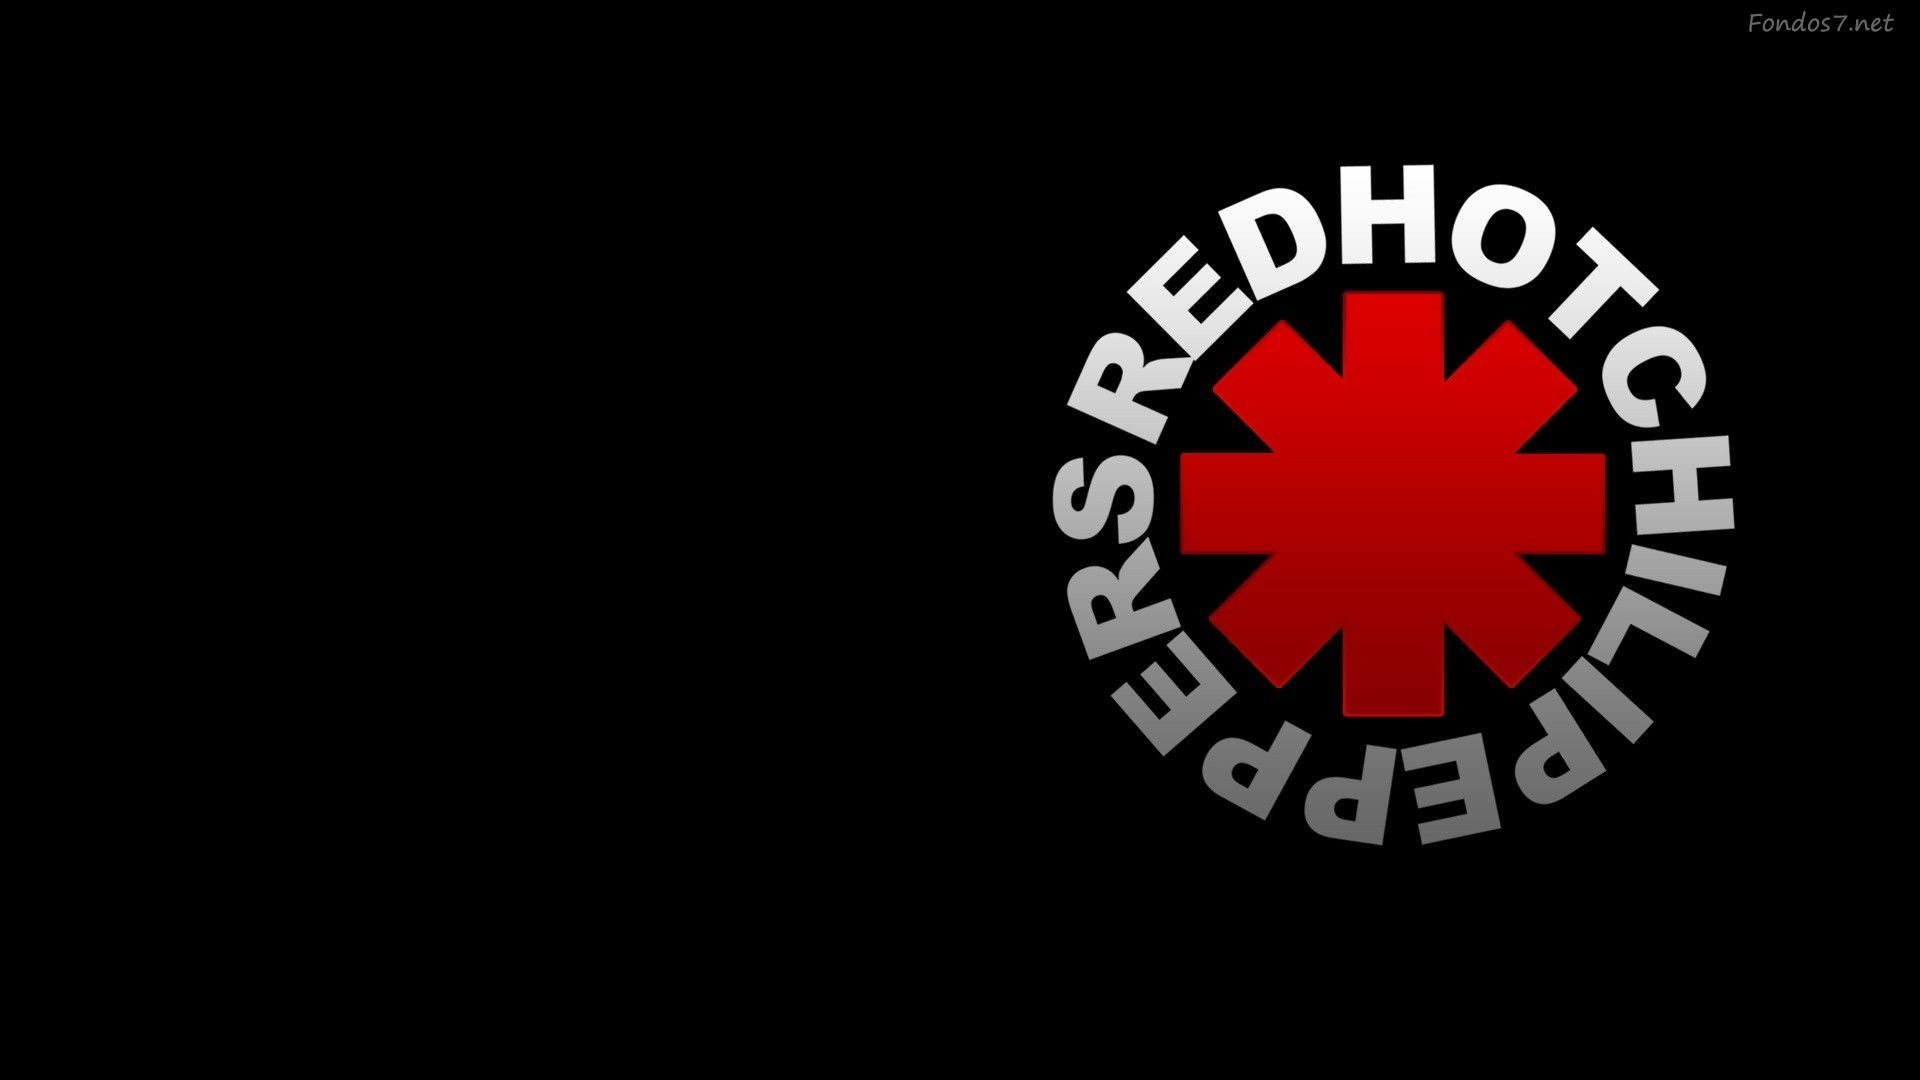 7765 - ¿Cuánto sabes de Red Hot Chili Peppers?